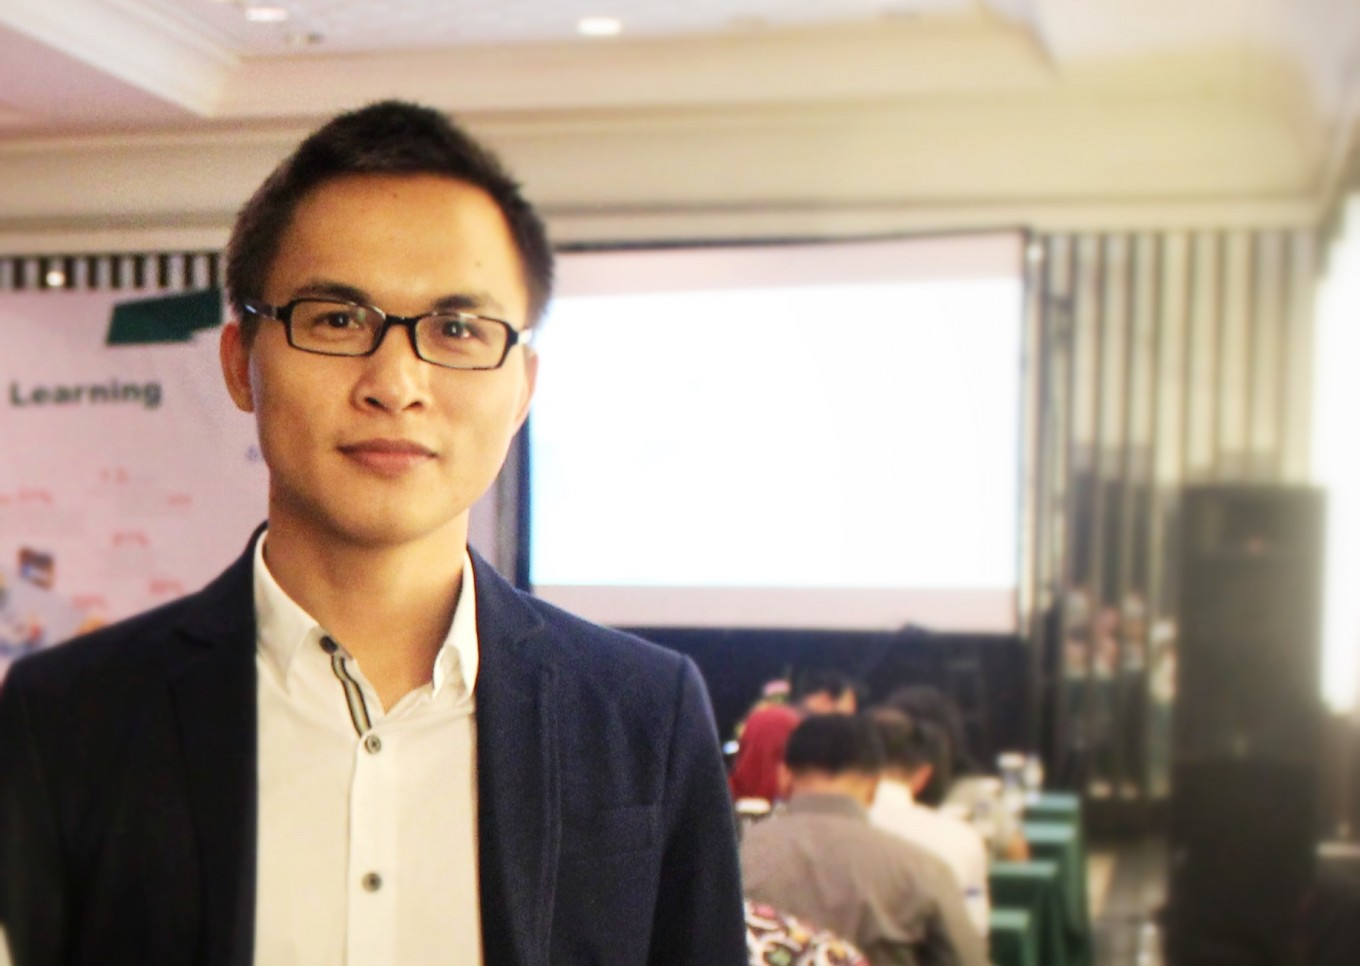 We will give Indonesian publishers greater benefit: Alibaba's UCWeb